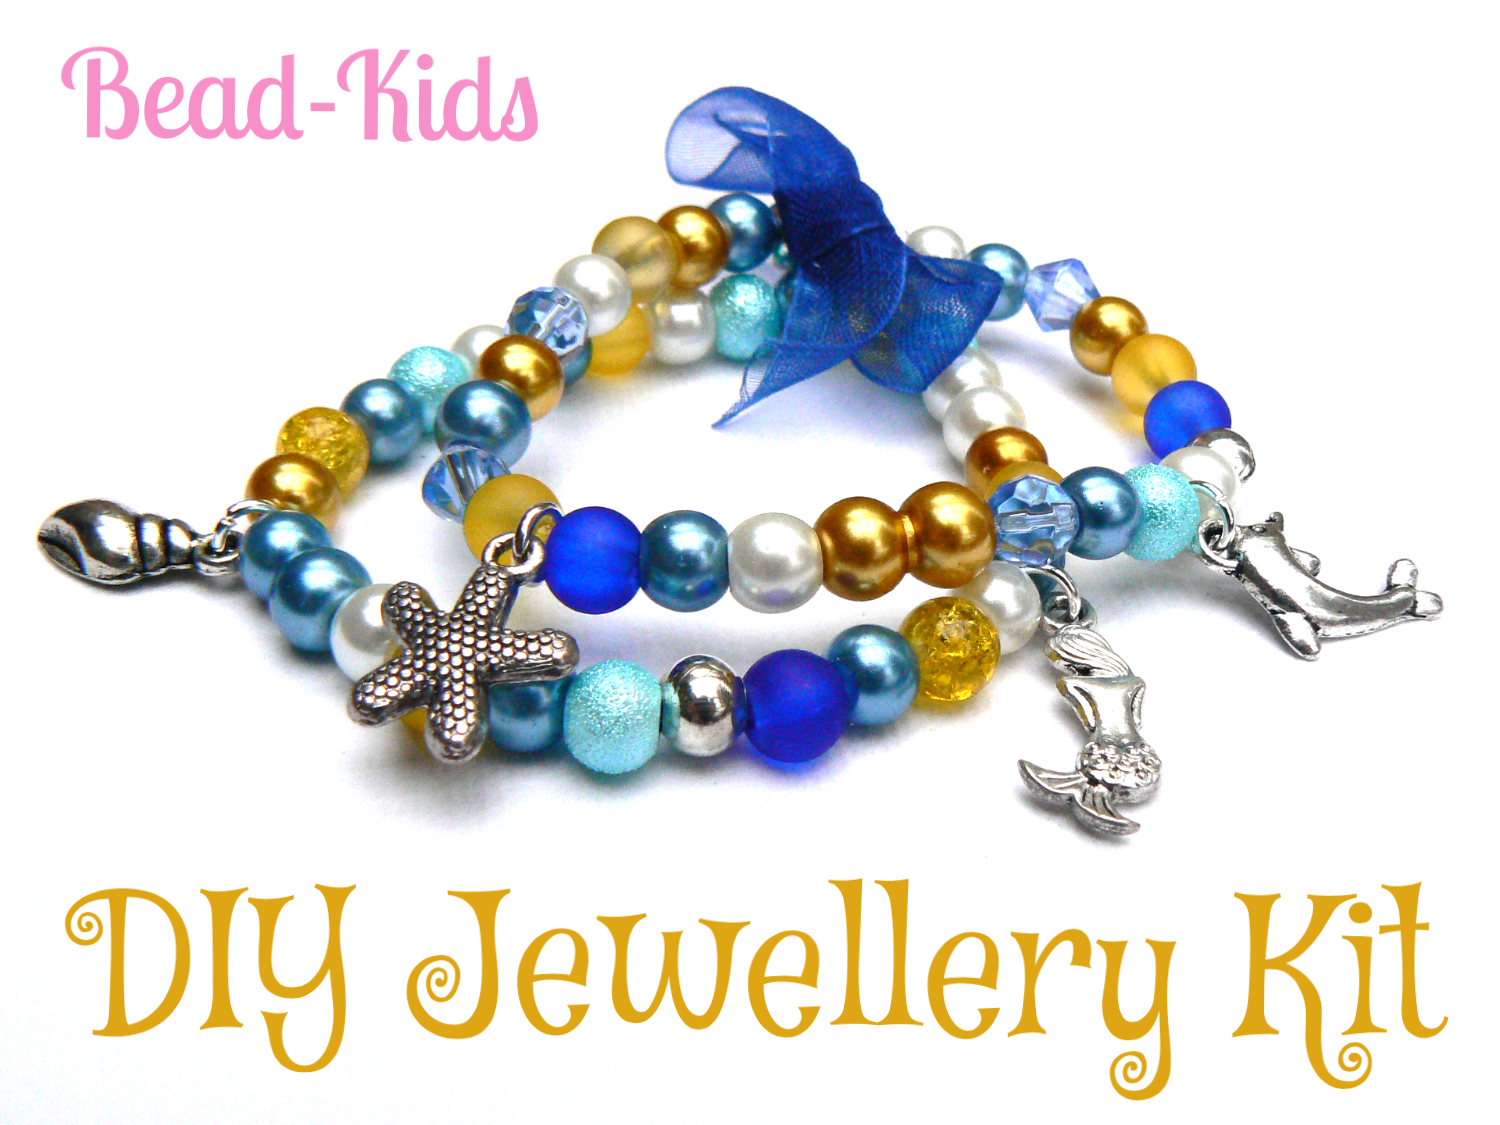 Make your own Dolphin stretch charm bracelet - no tools required and great for ages 5yrs+